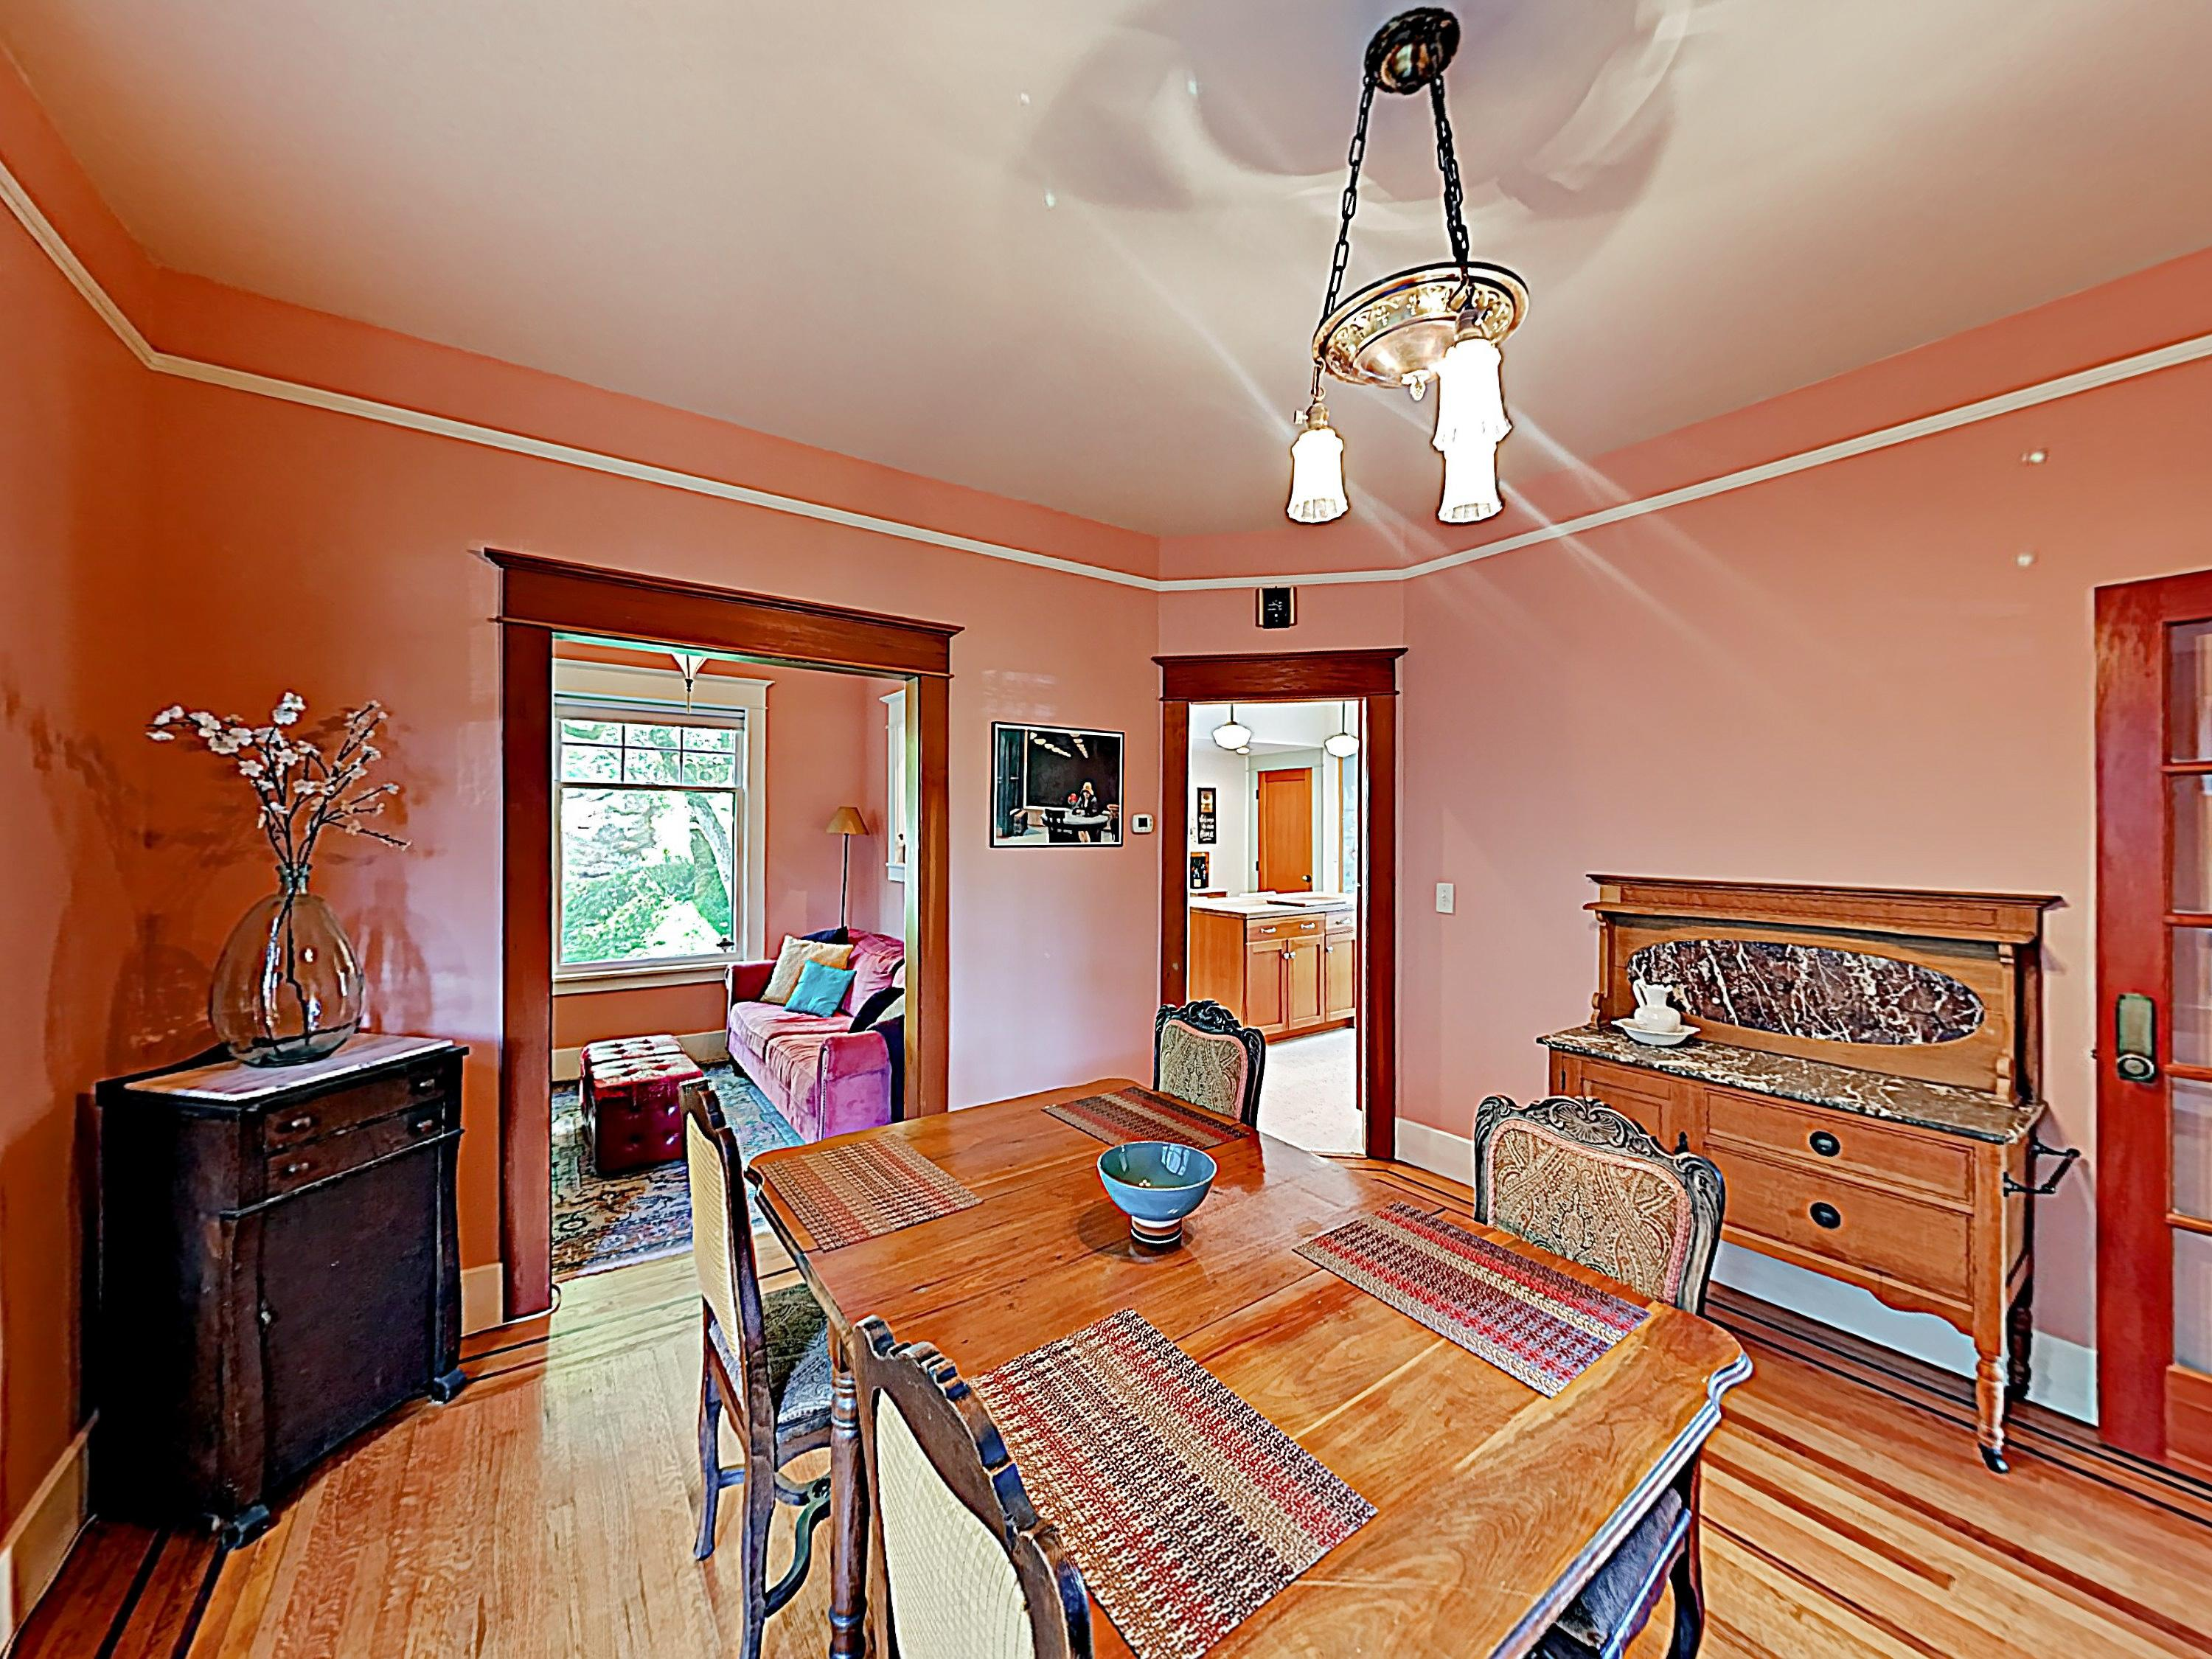 Share meals in the formal dining room, outfitted with a wood table and a granite buffet.